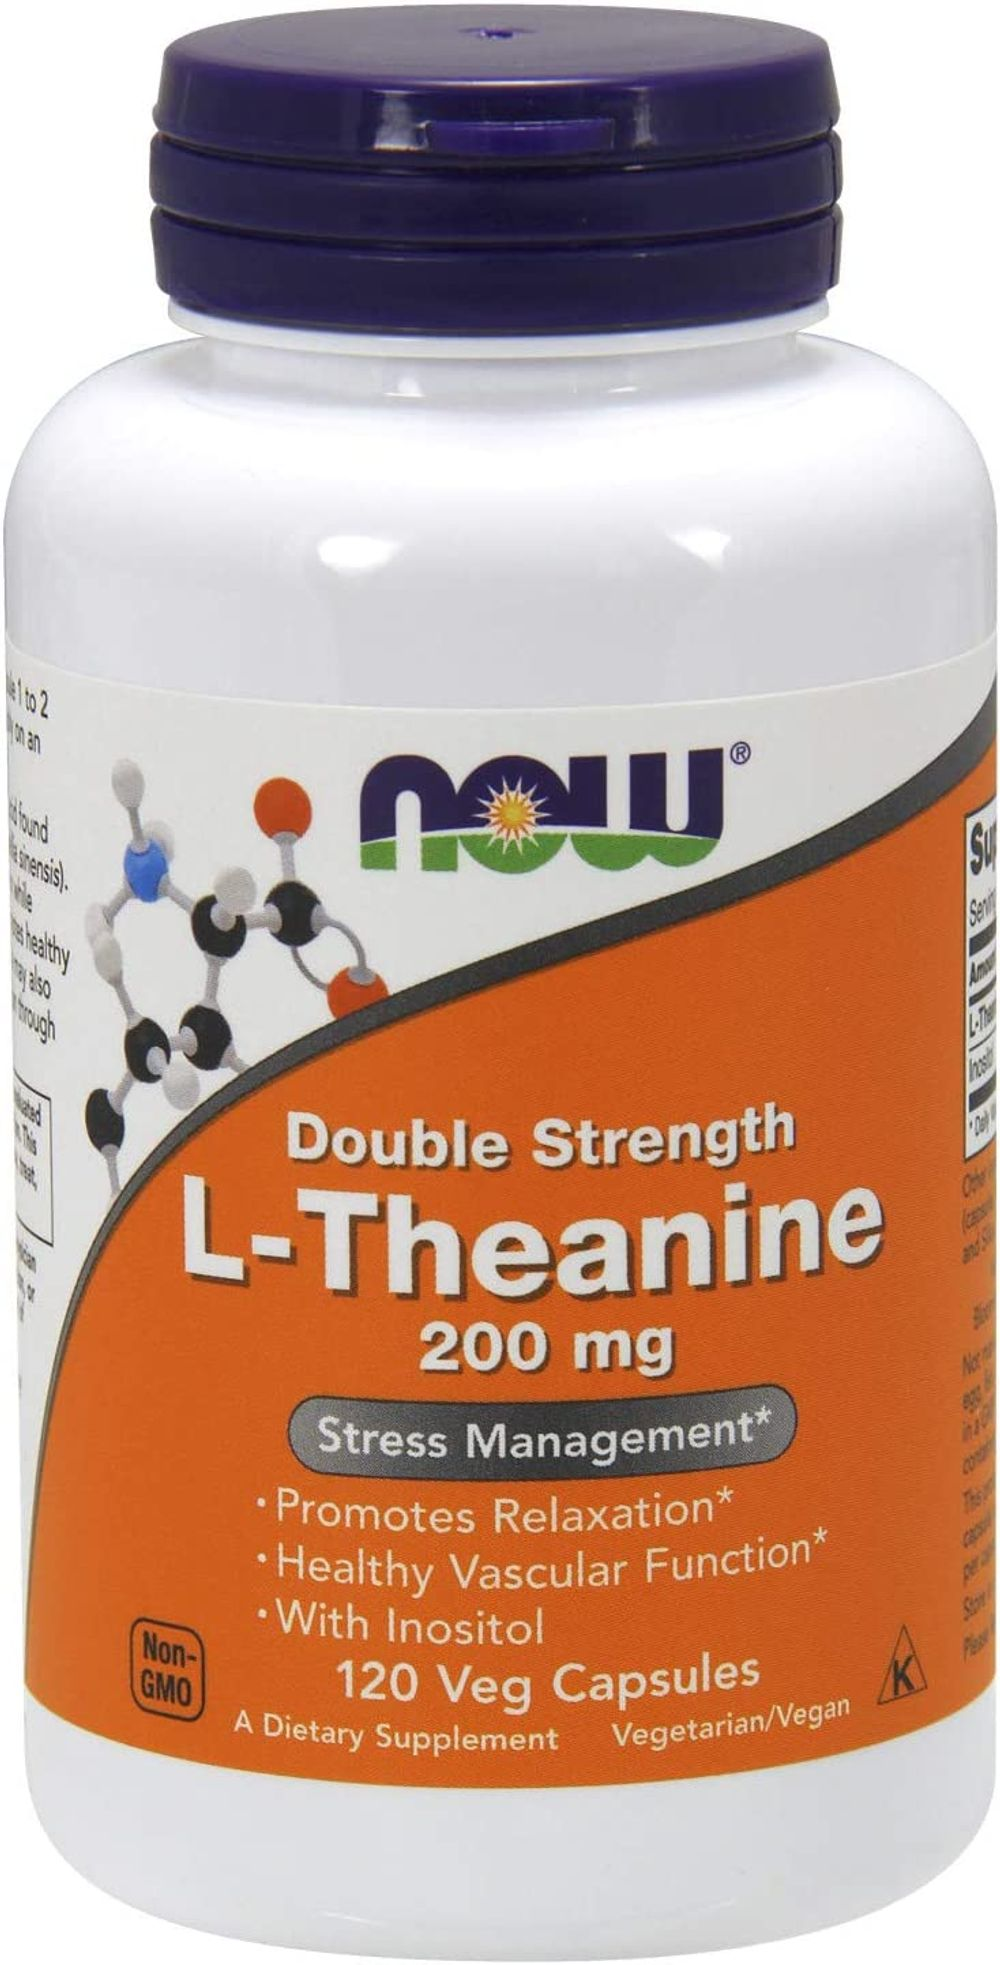 NOW Supplements, L-Theanine 200 mg with Inositol, Stress Management*, 120 Veg Capsules